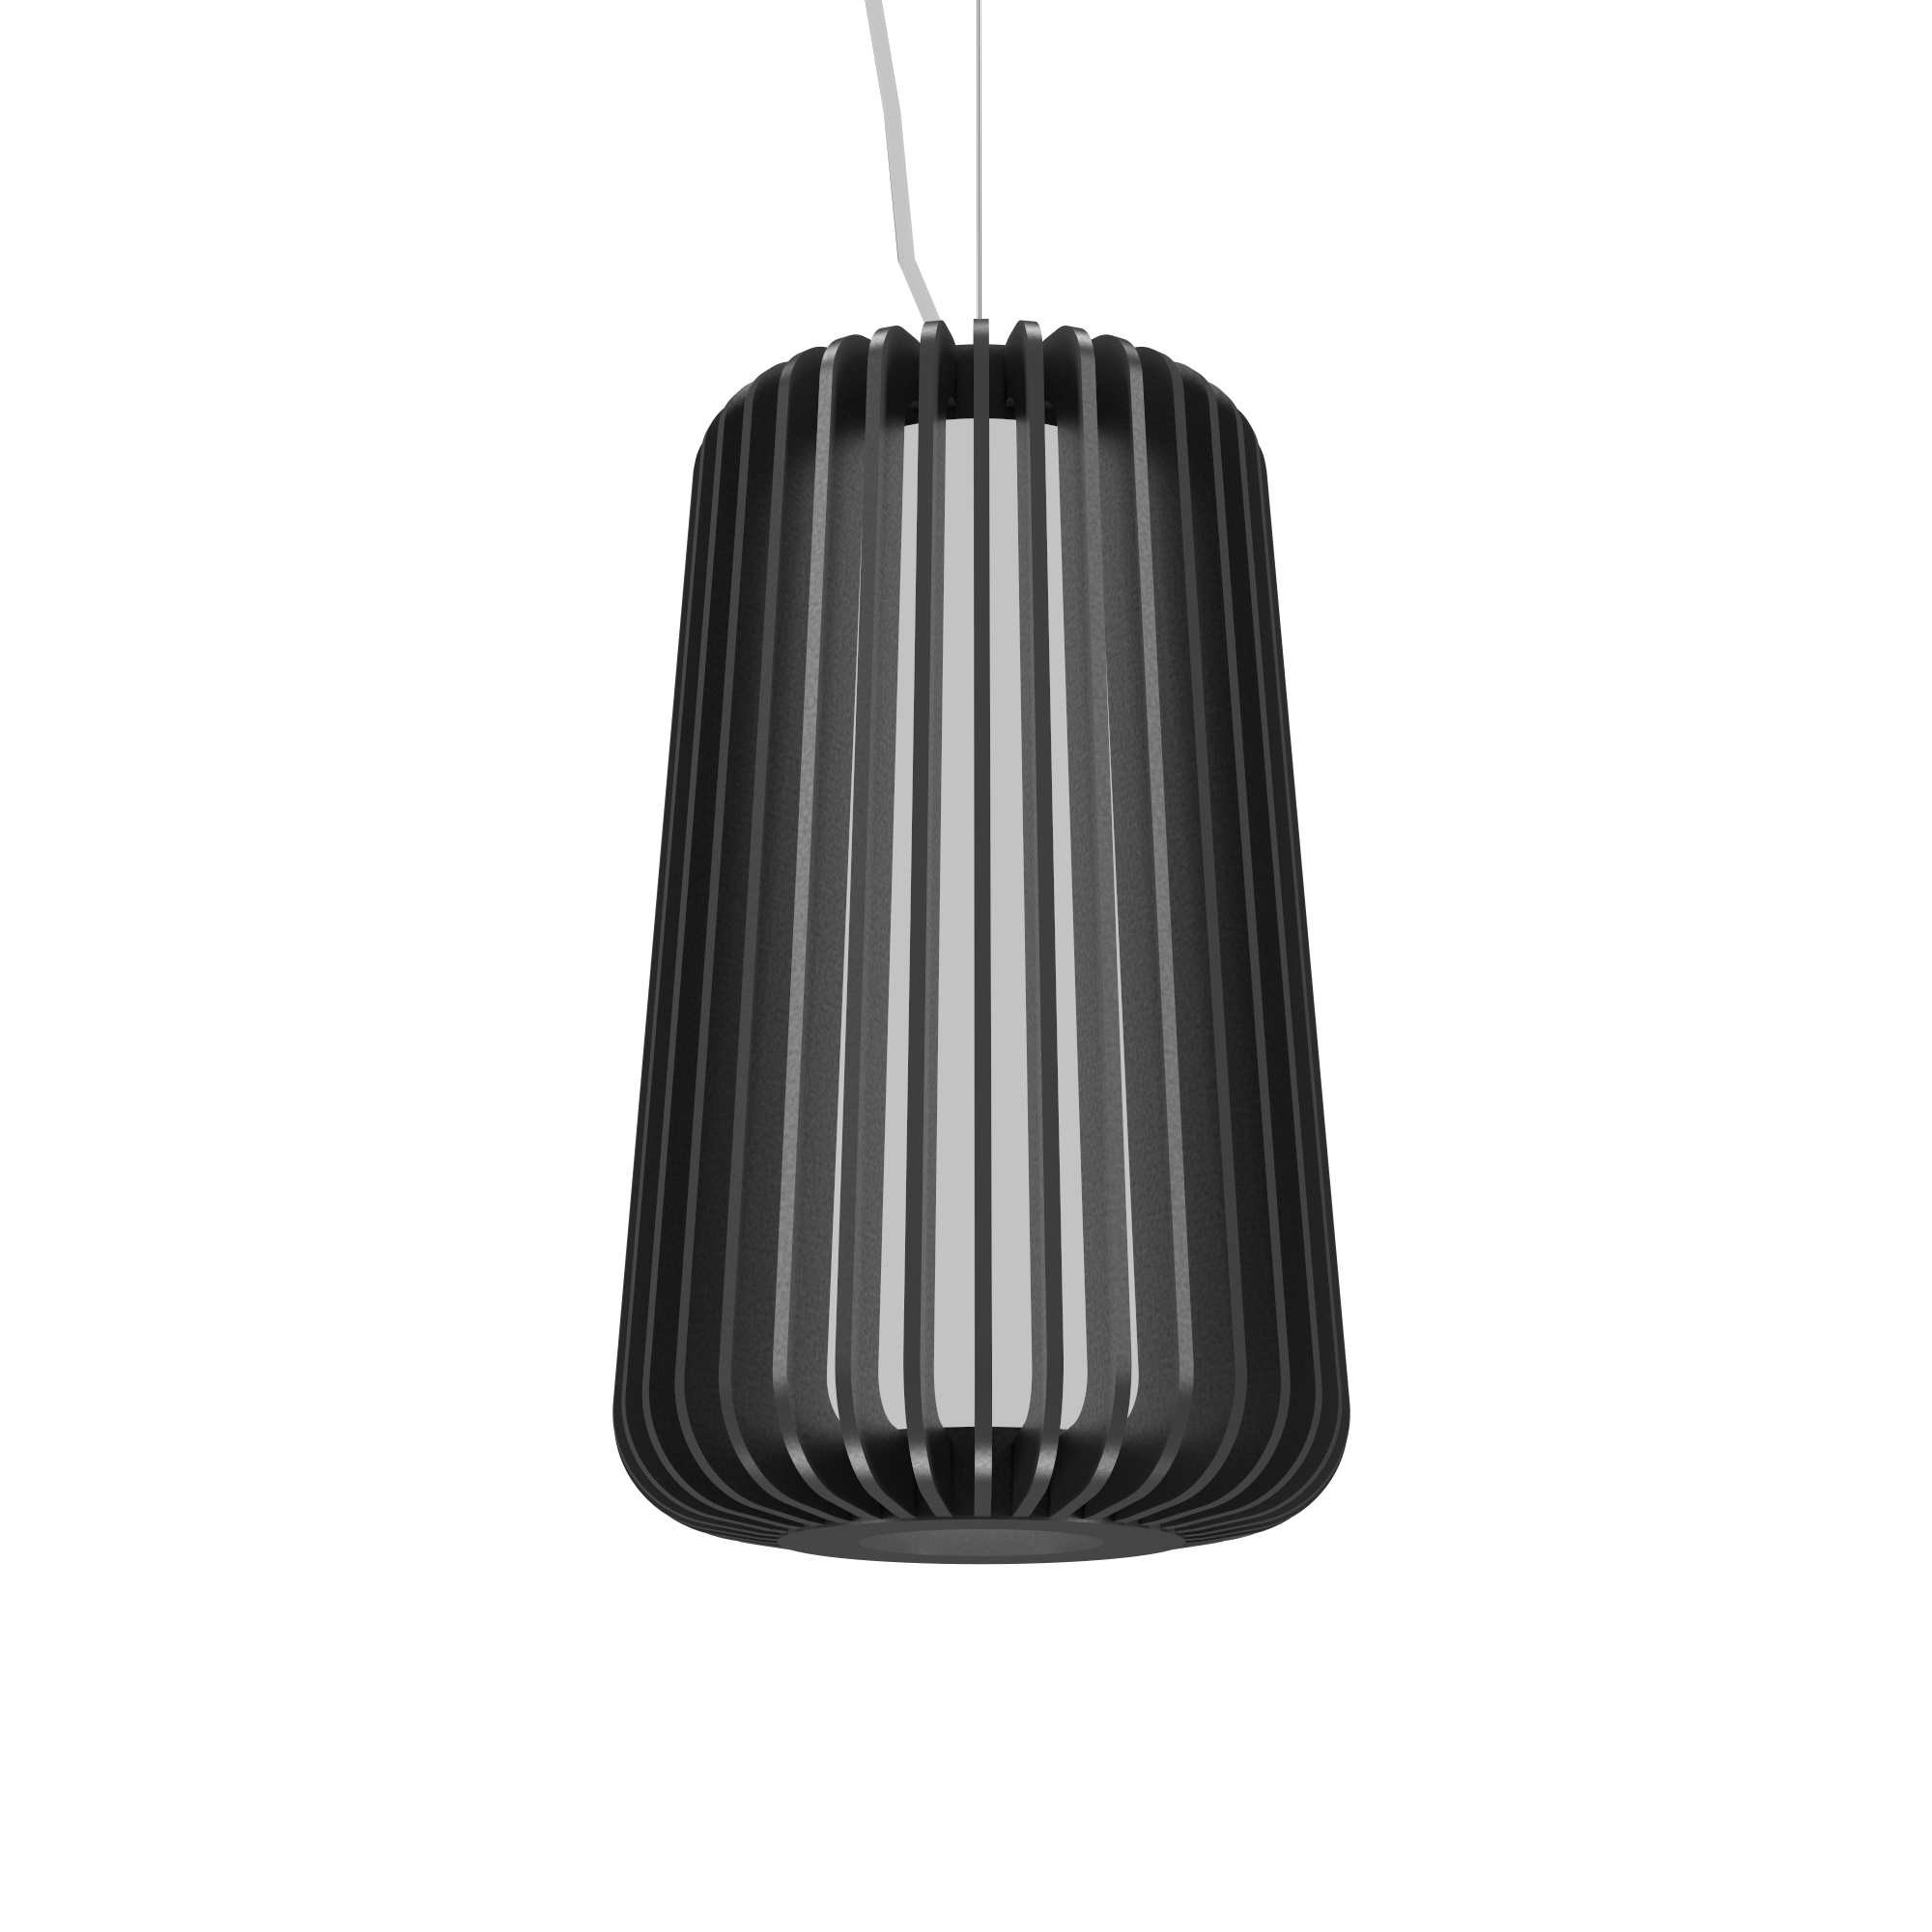 Pendant Lamp Accord Stecche Di Legno 1427 - Stecche Di Legno Line Accord Lighting | Lead Grey